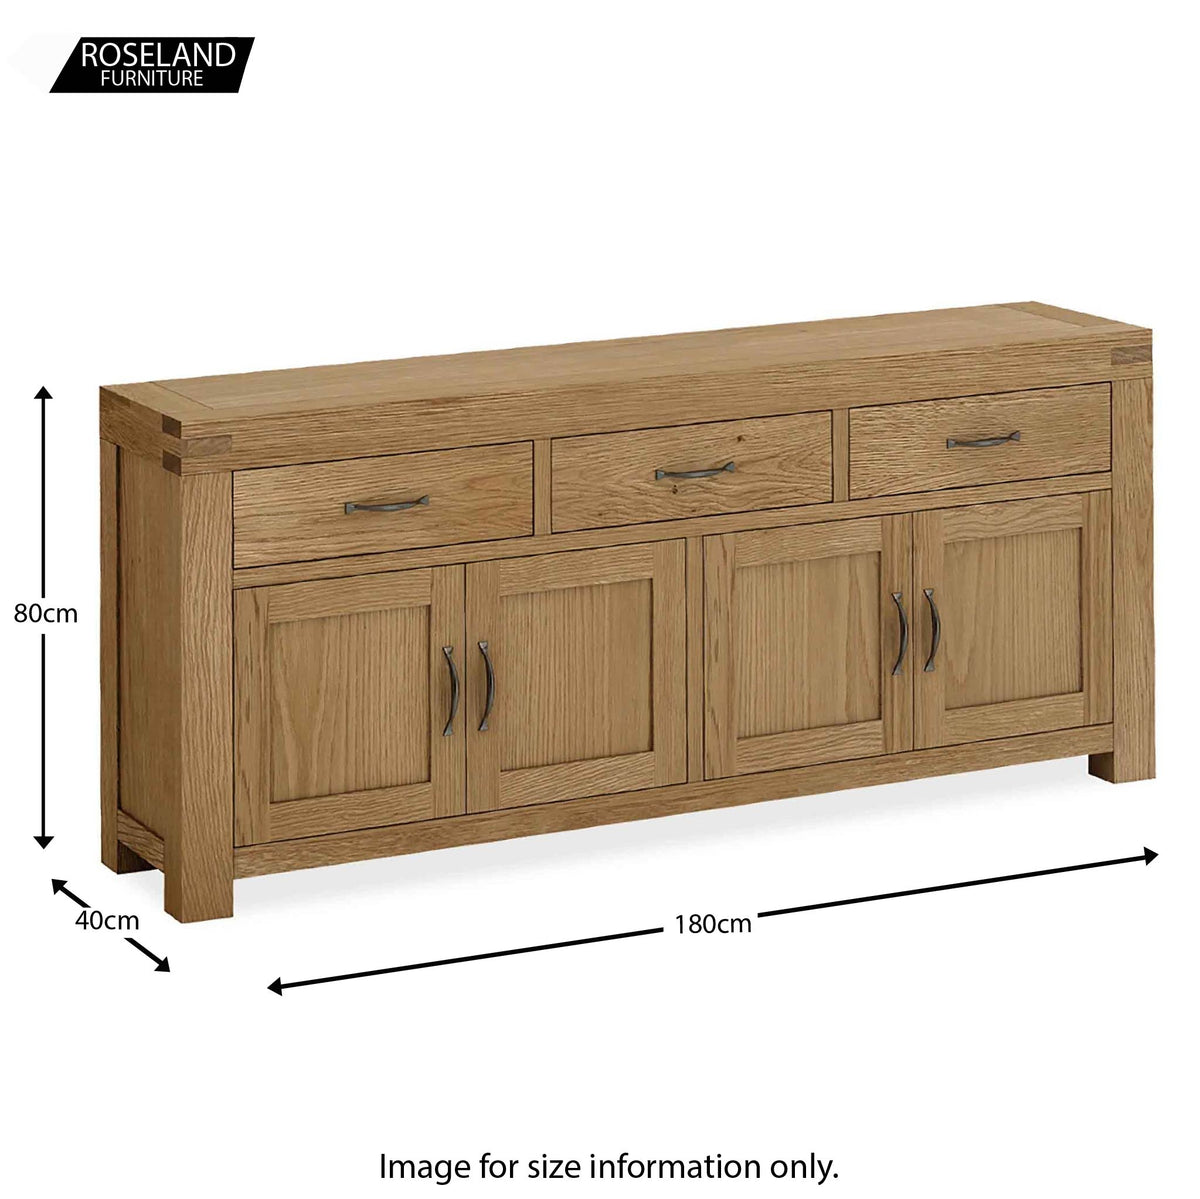 Abbey Grande Oak Extra Large King Sideboard - Size guide